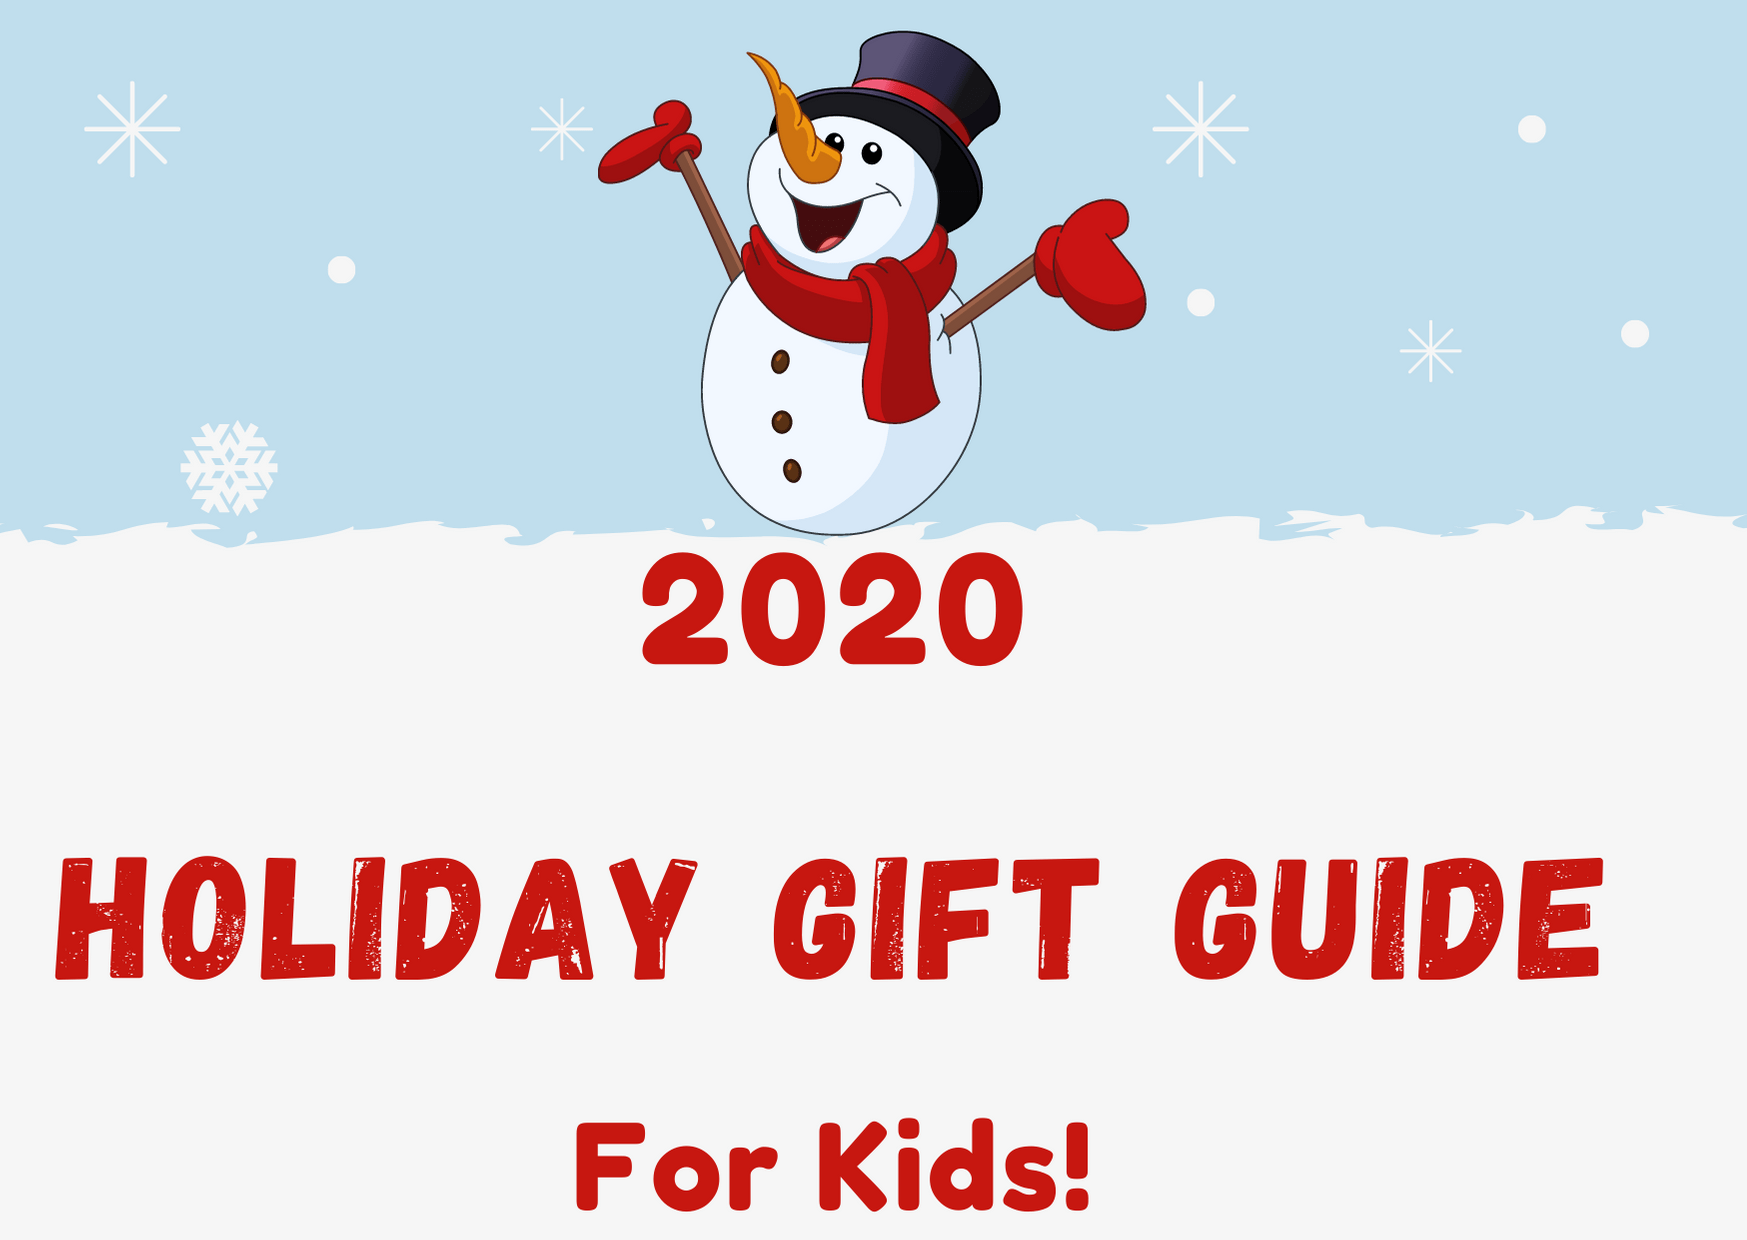 2020 Holiday Gift Guide For Kids